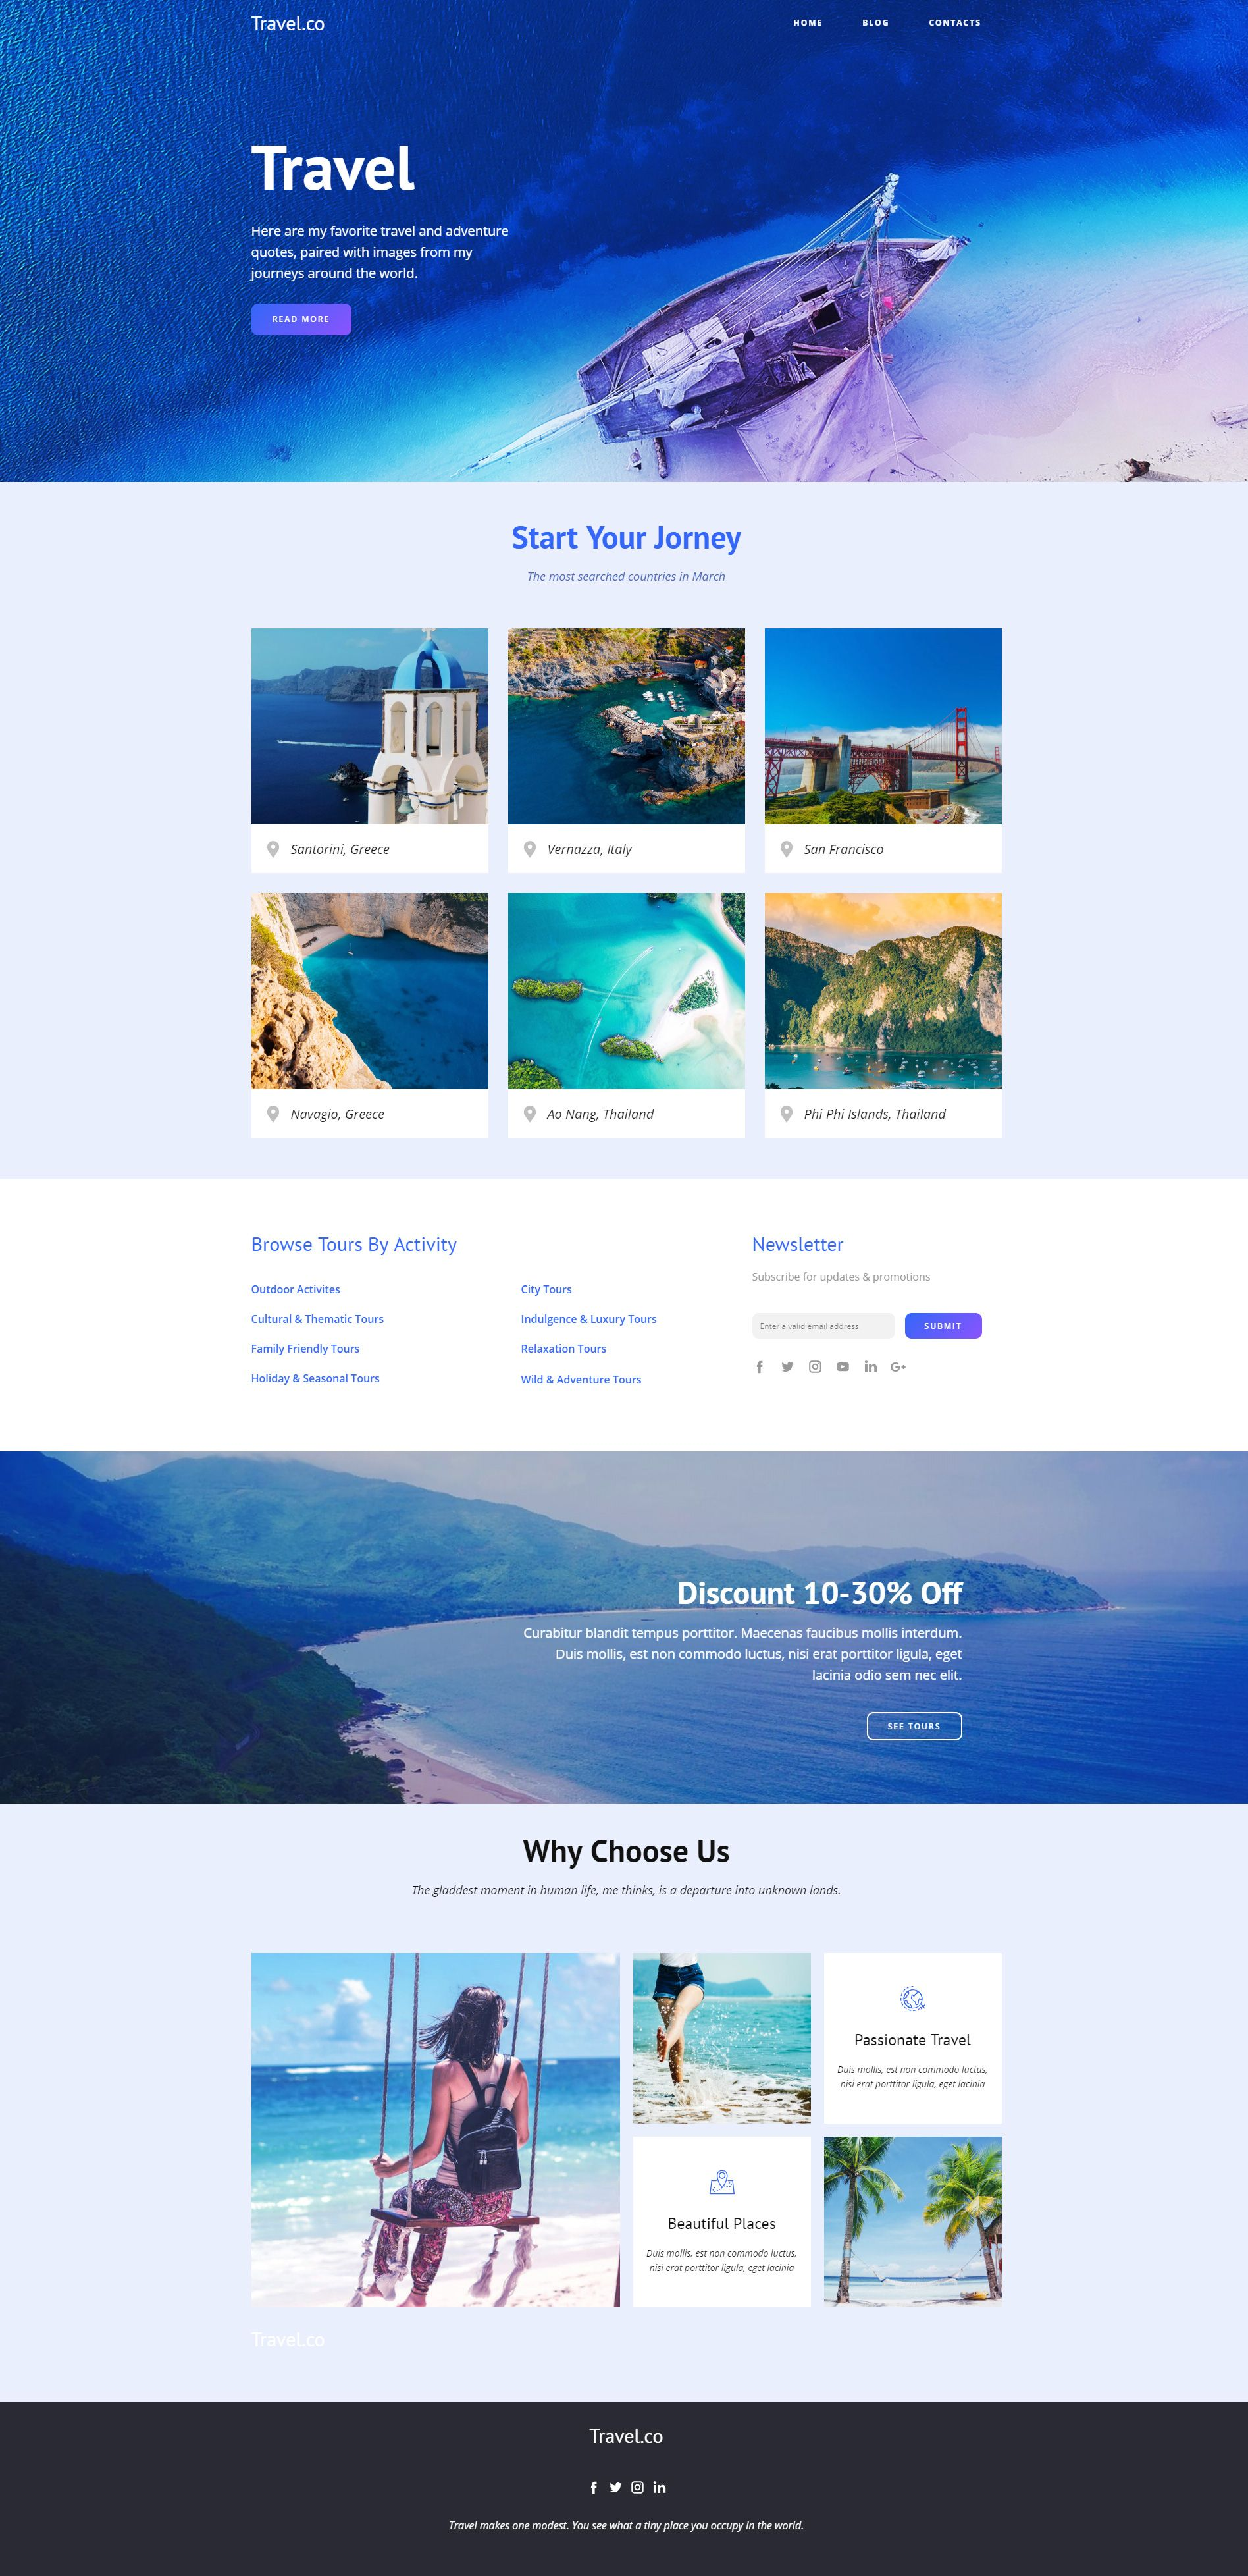 Nicepage Is A New Powerful Web Design Tool And An Easy To Use Builder For Your Websites Blogs And Themes D Travel Website Design Web Design Tools Web Design